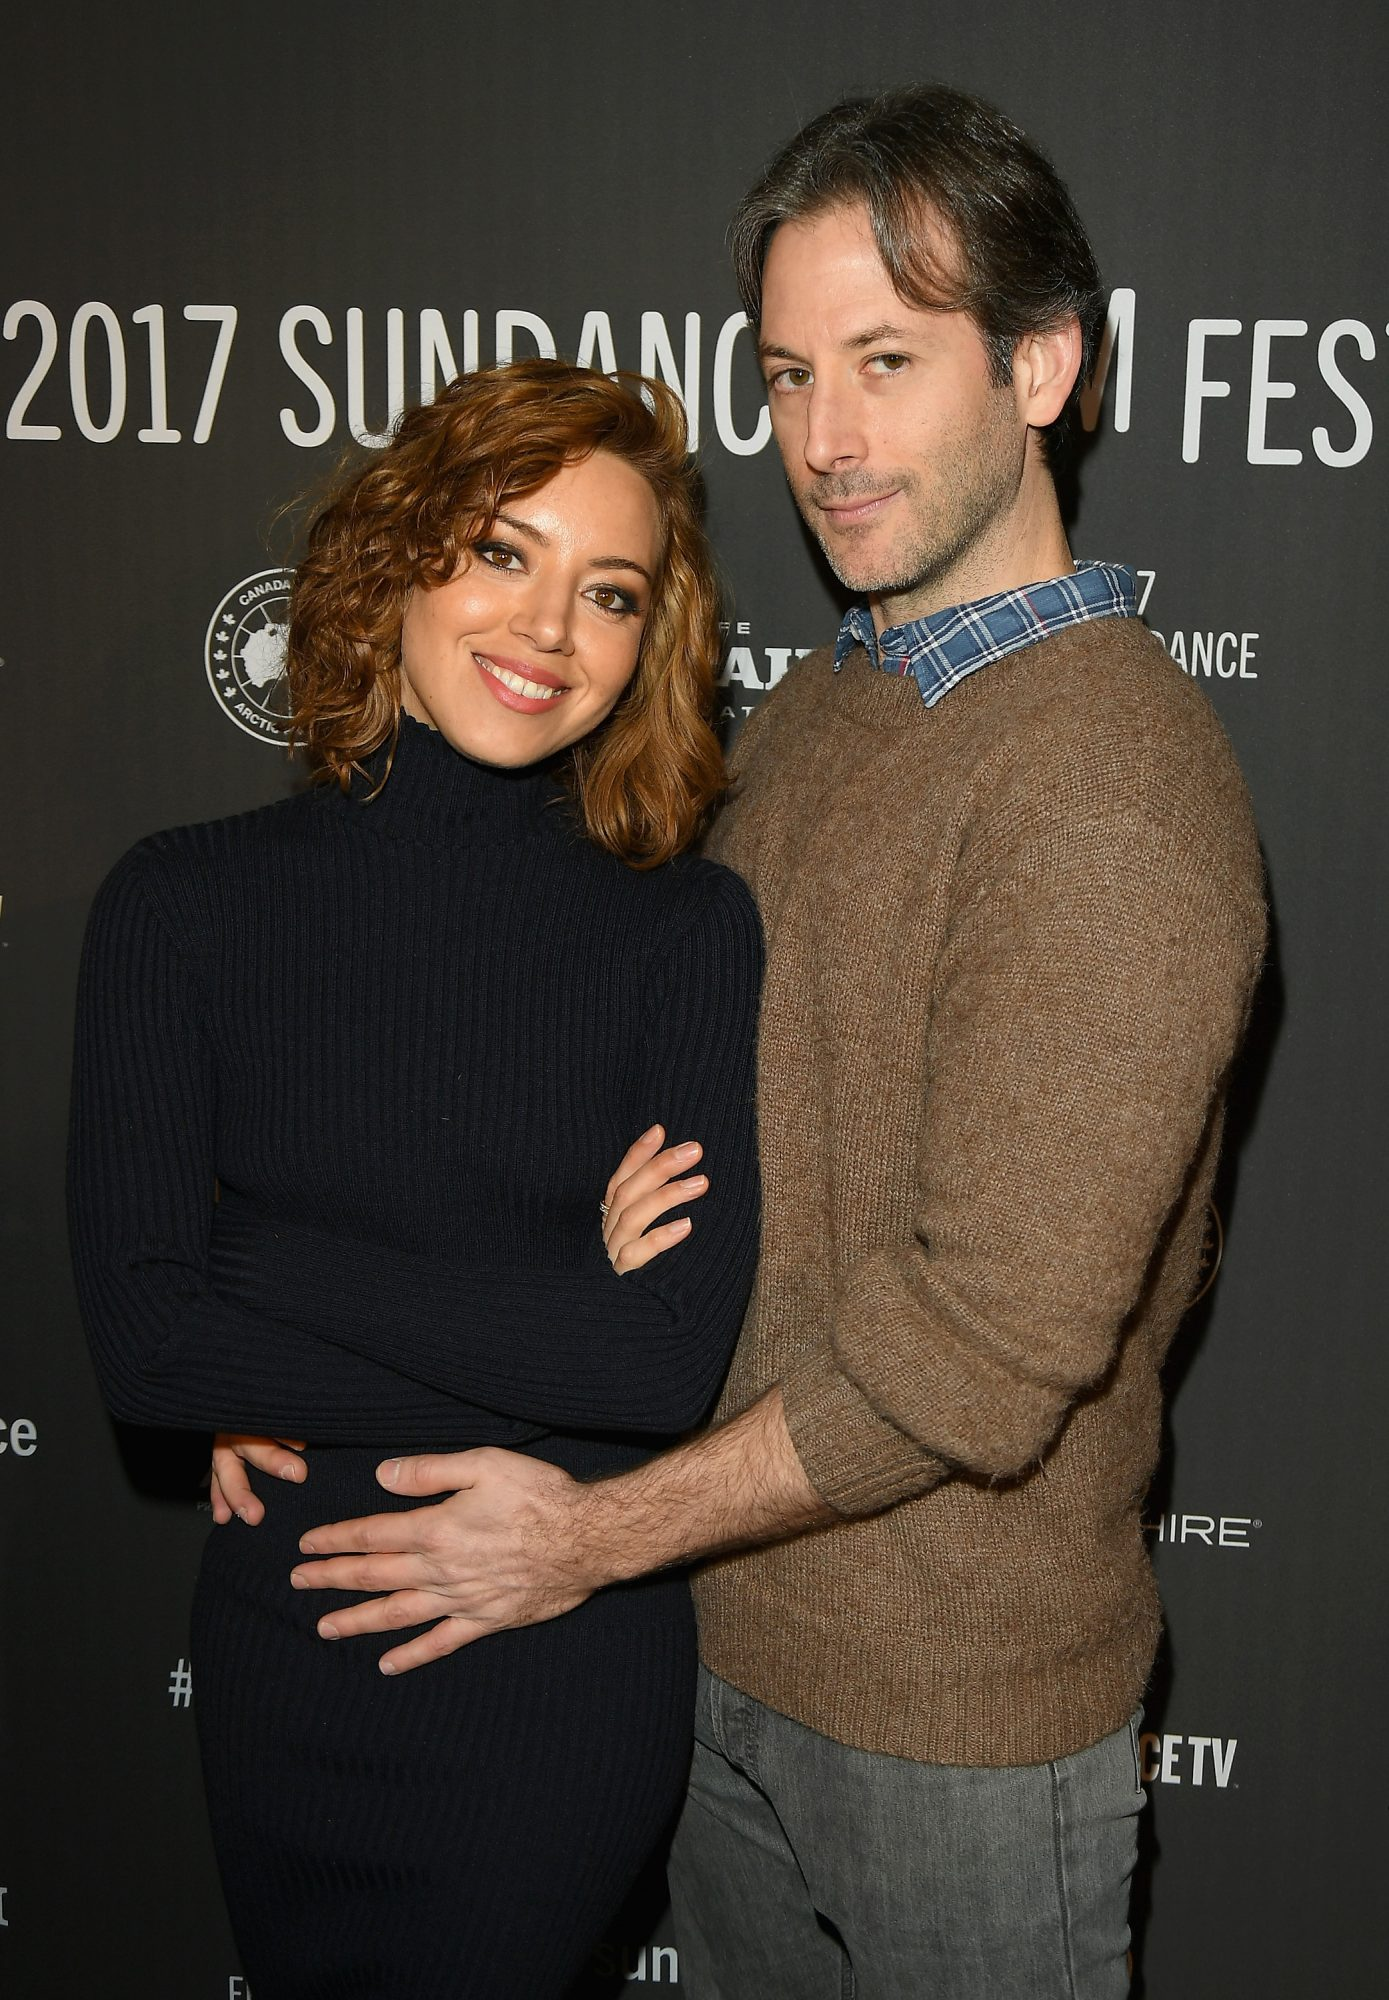 Aubrey plaza and Jeff Baena pose for photograph